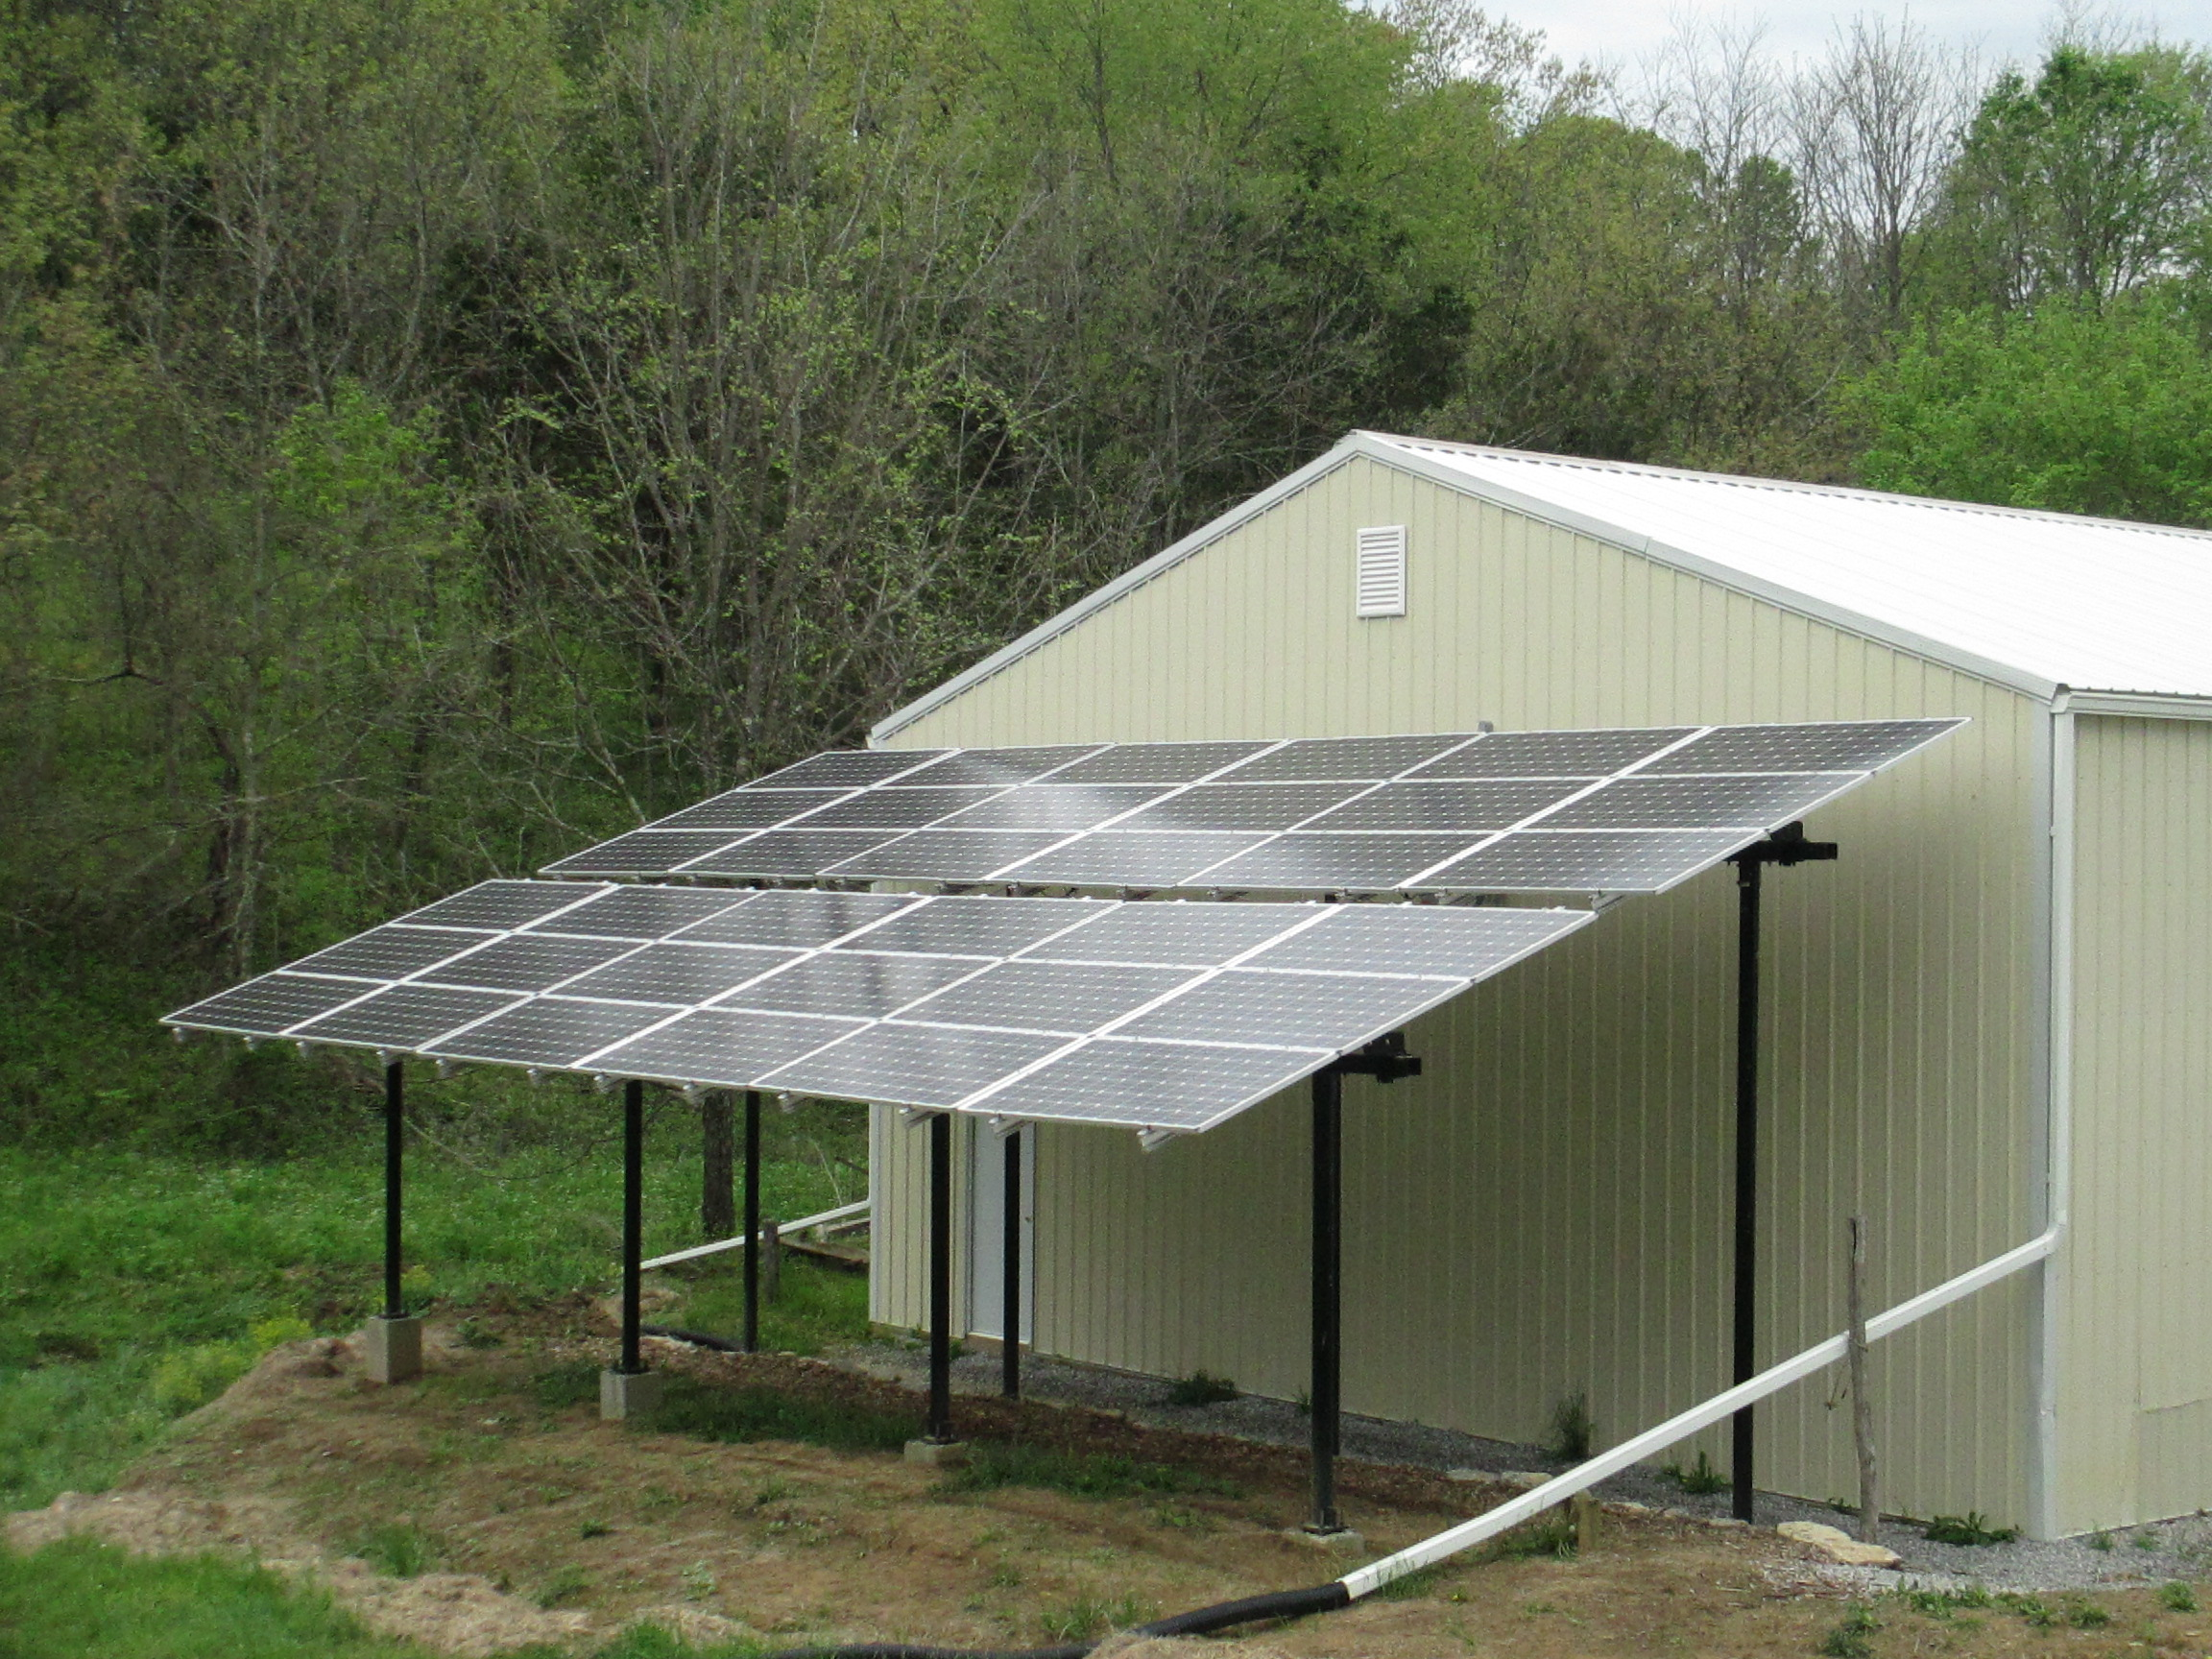 Earth Tools The Back Shed Recycled Items Used To Generate Power Solar Pv Additional 115kw Array Put In Service January 2016 We Are Now 100 Powered